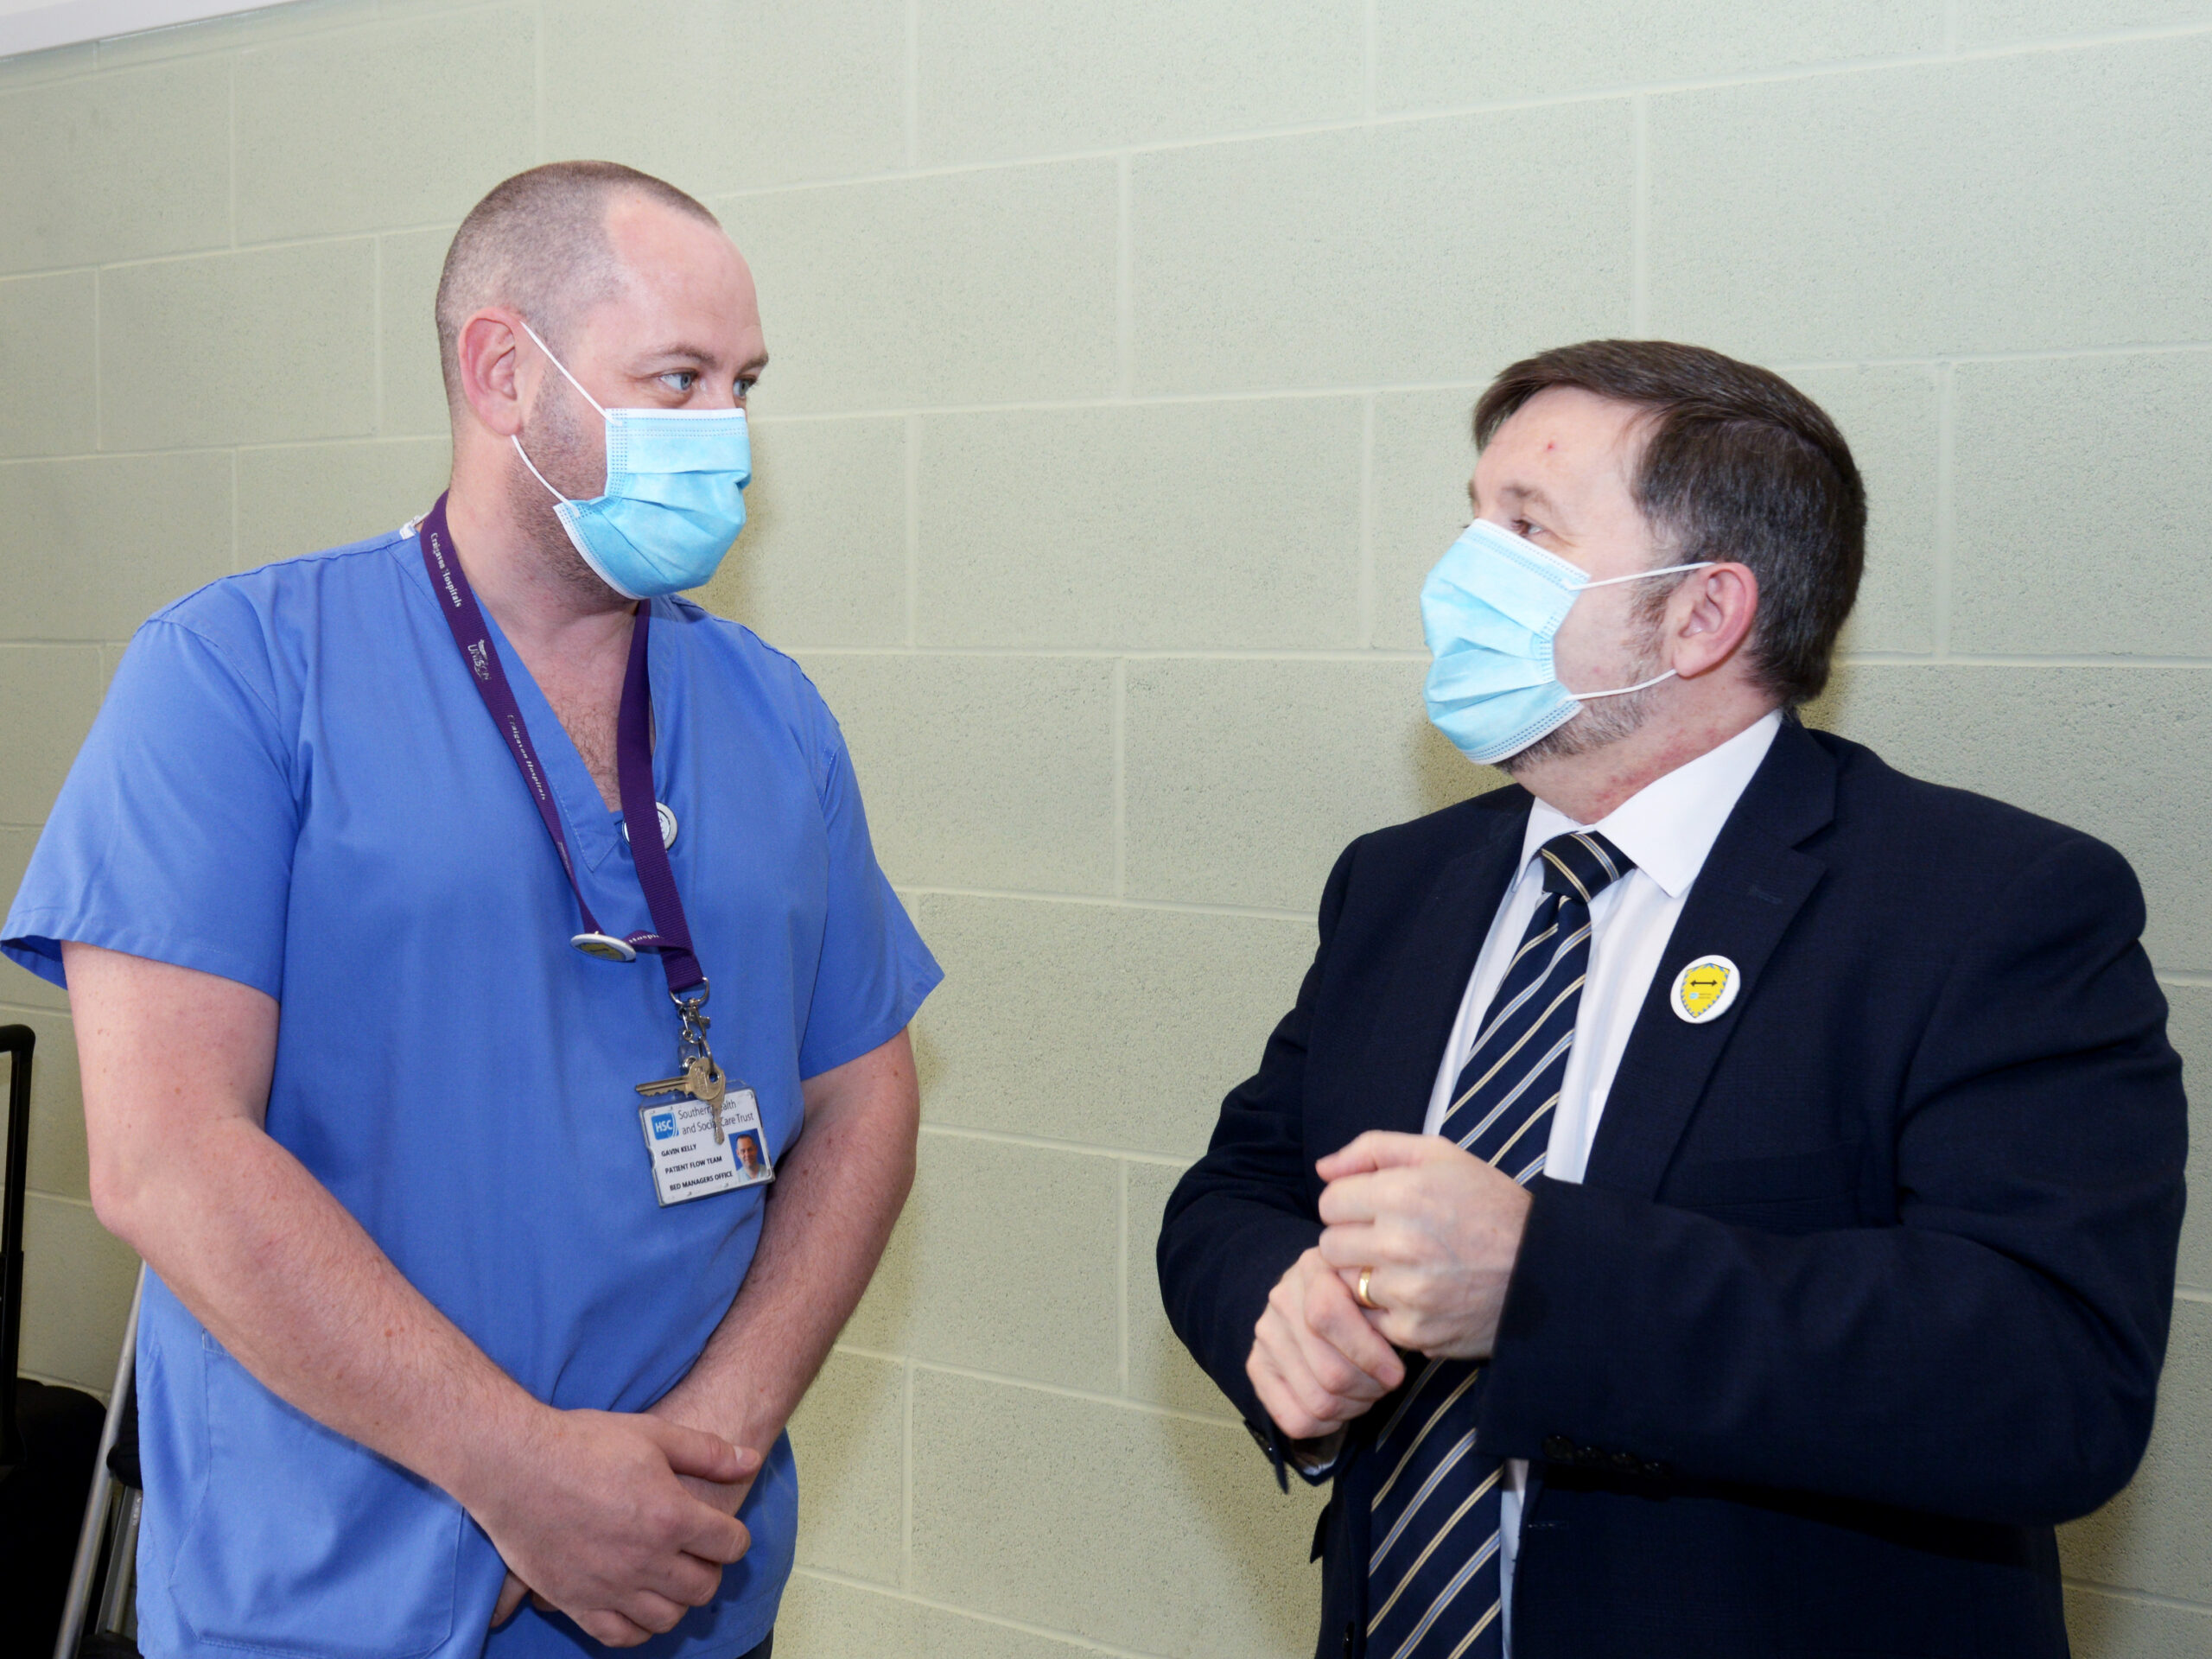 Mininster and vaccinator - Department publishes updated COVID-19 Response Strategy | Newry Times - Newry Covid19 Coronavirus news